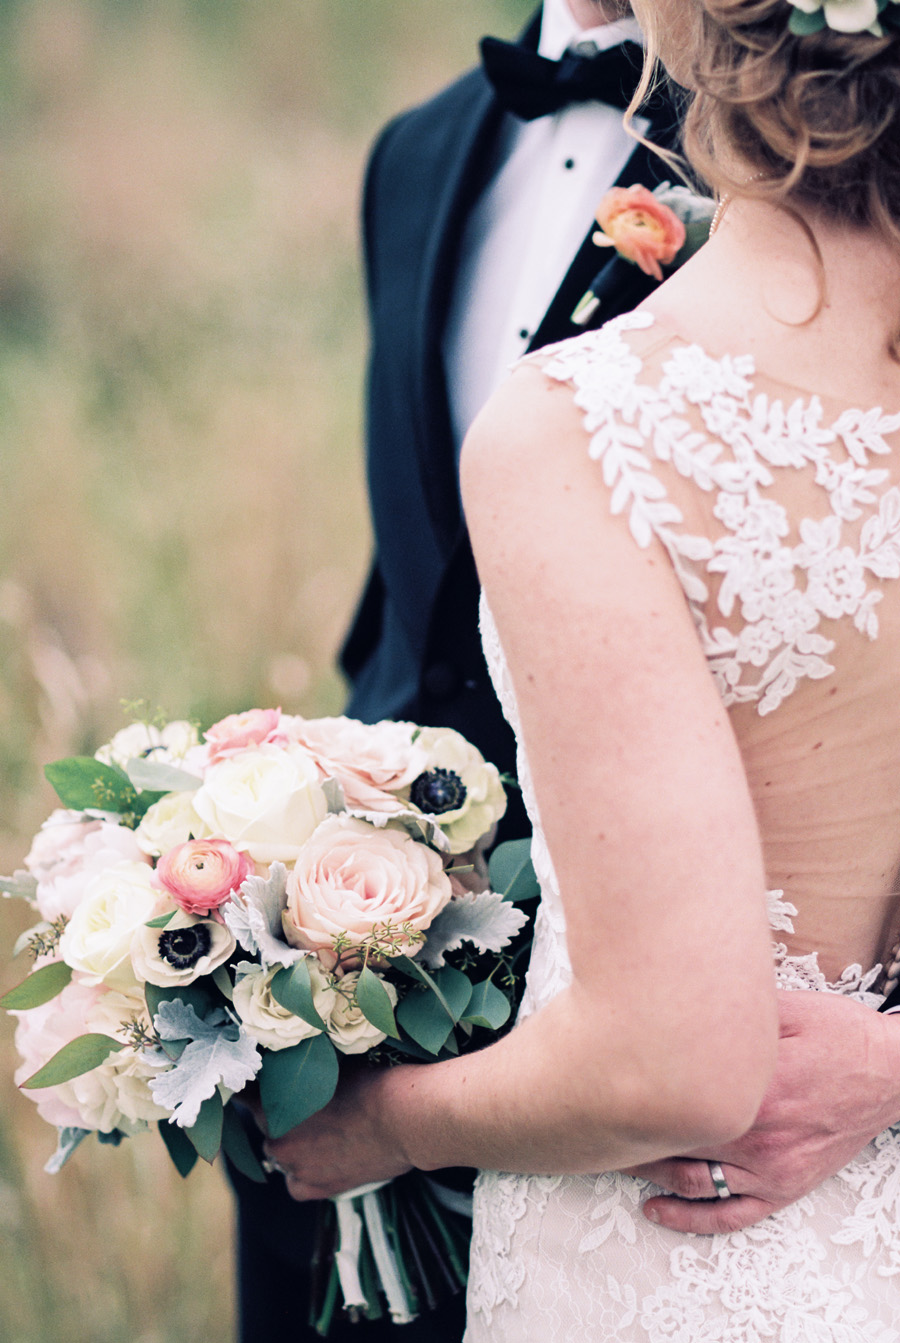 Detail of back of bride's dress and bridal bouquet.